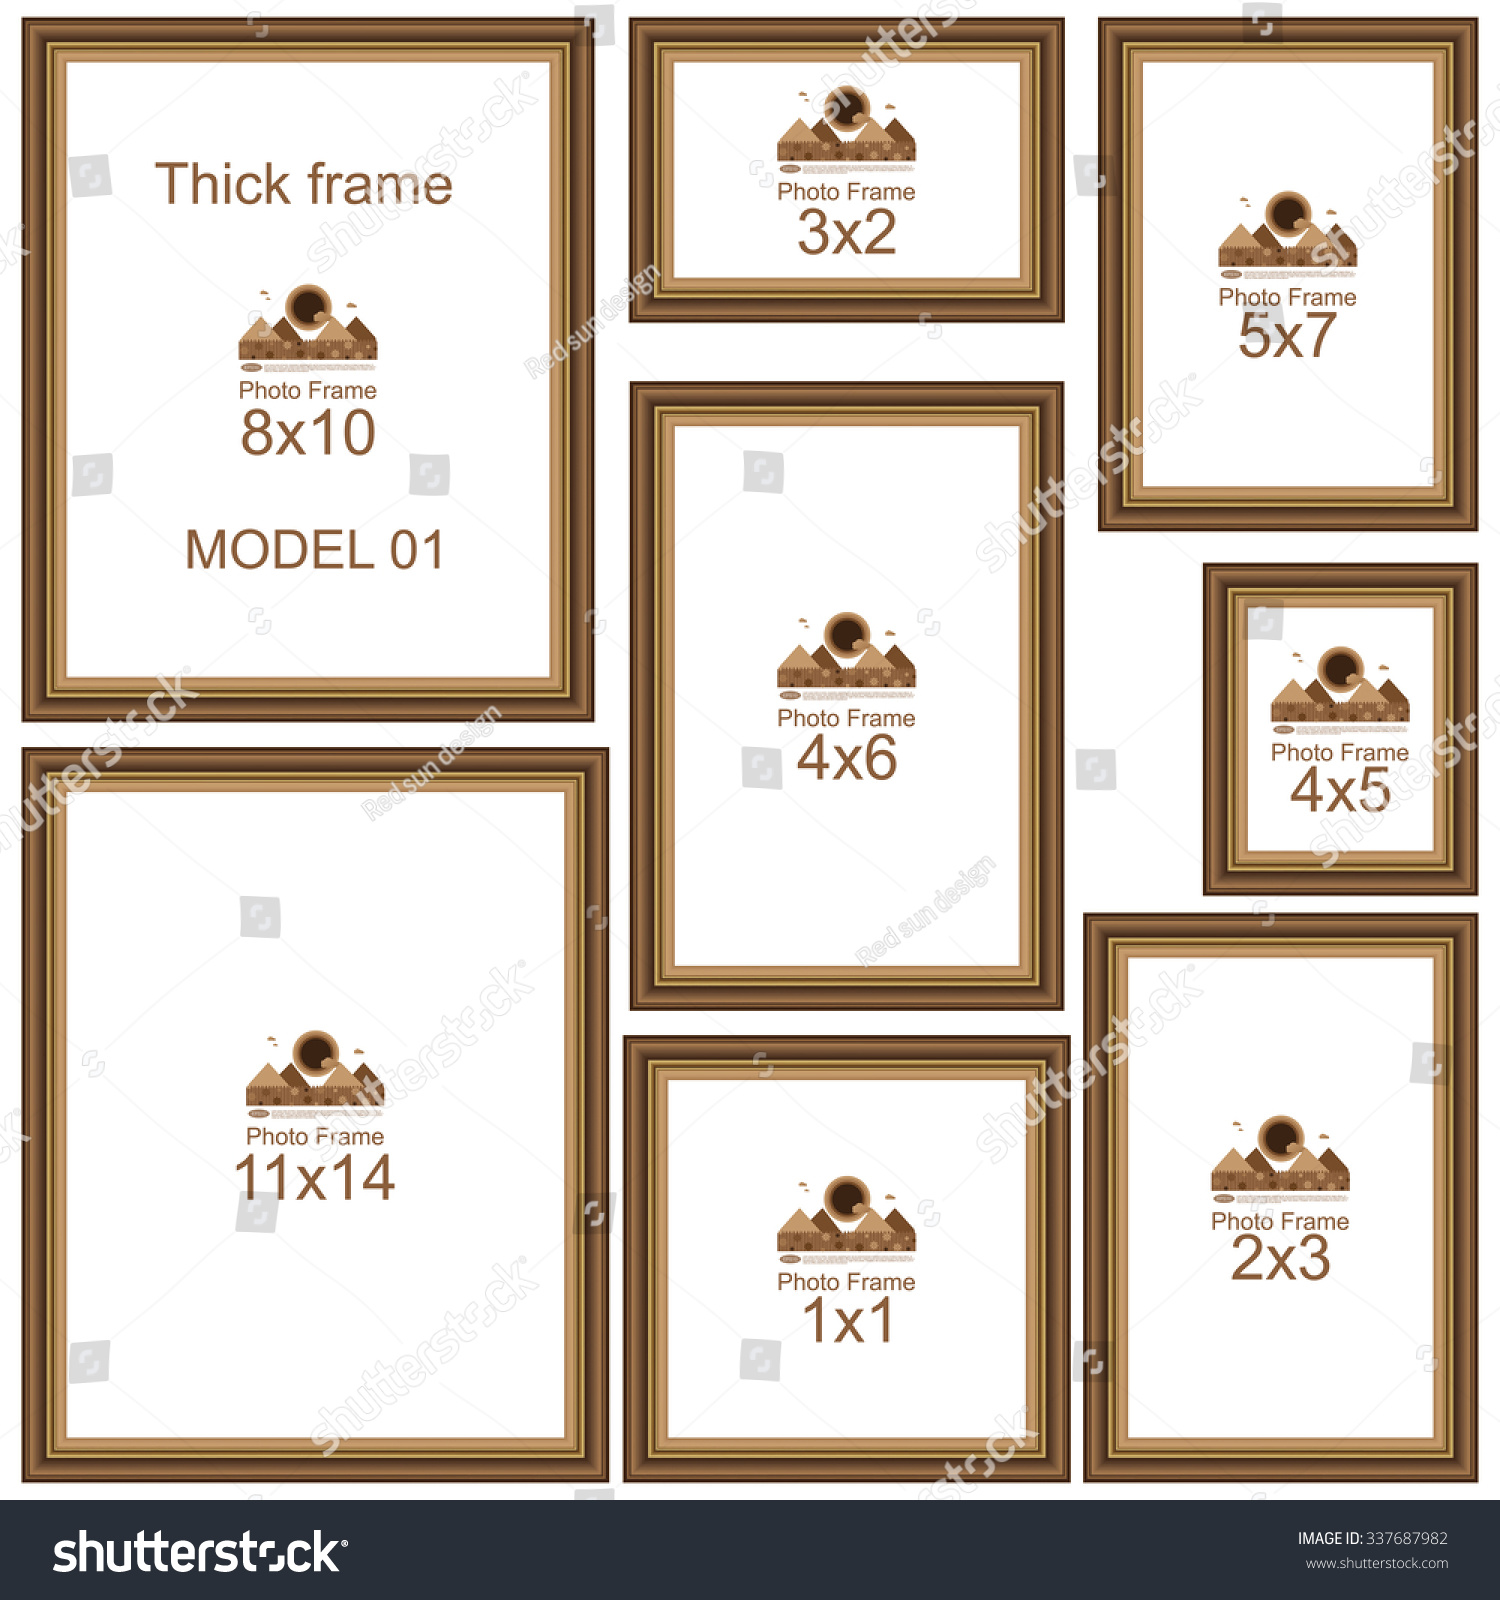 Popular Picture Frame Sizes Wood Border Stock Vector